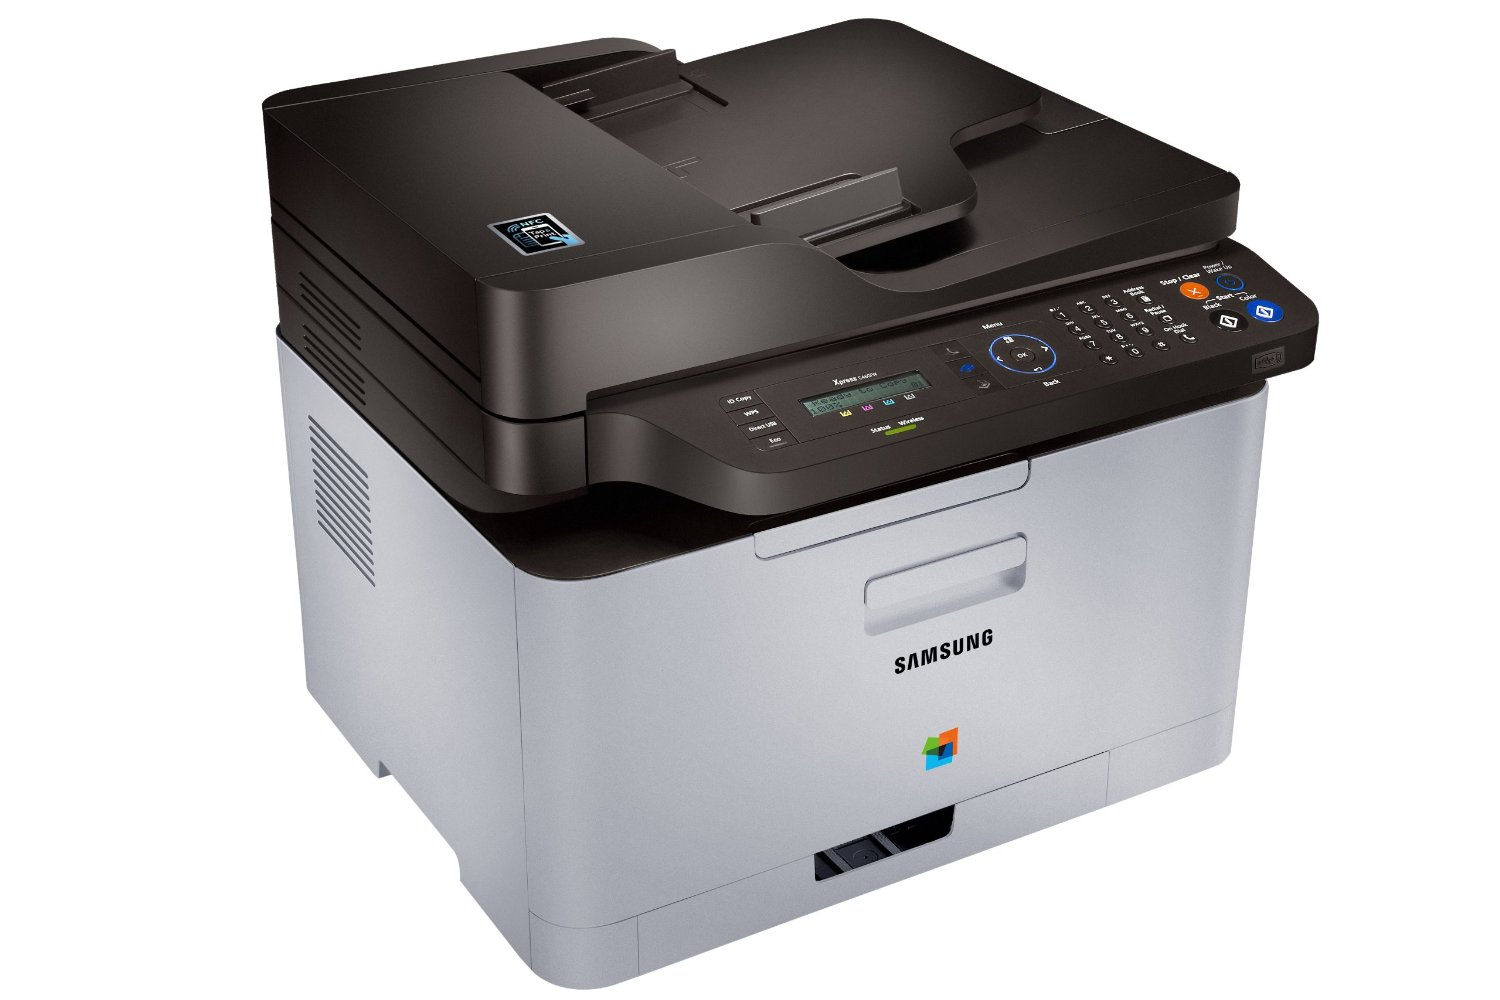 samsung xpress c460w multifunction printer review. Black Bedroom Furniture Sets. Home Design Ideas